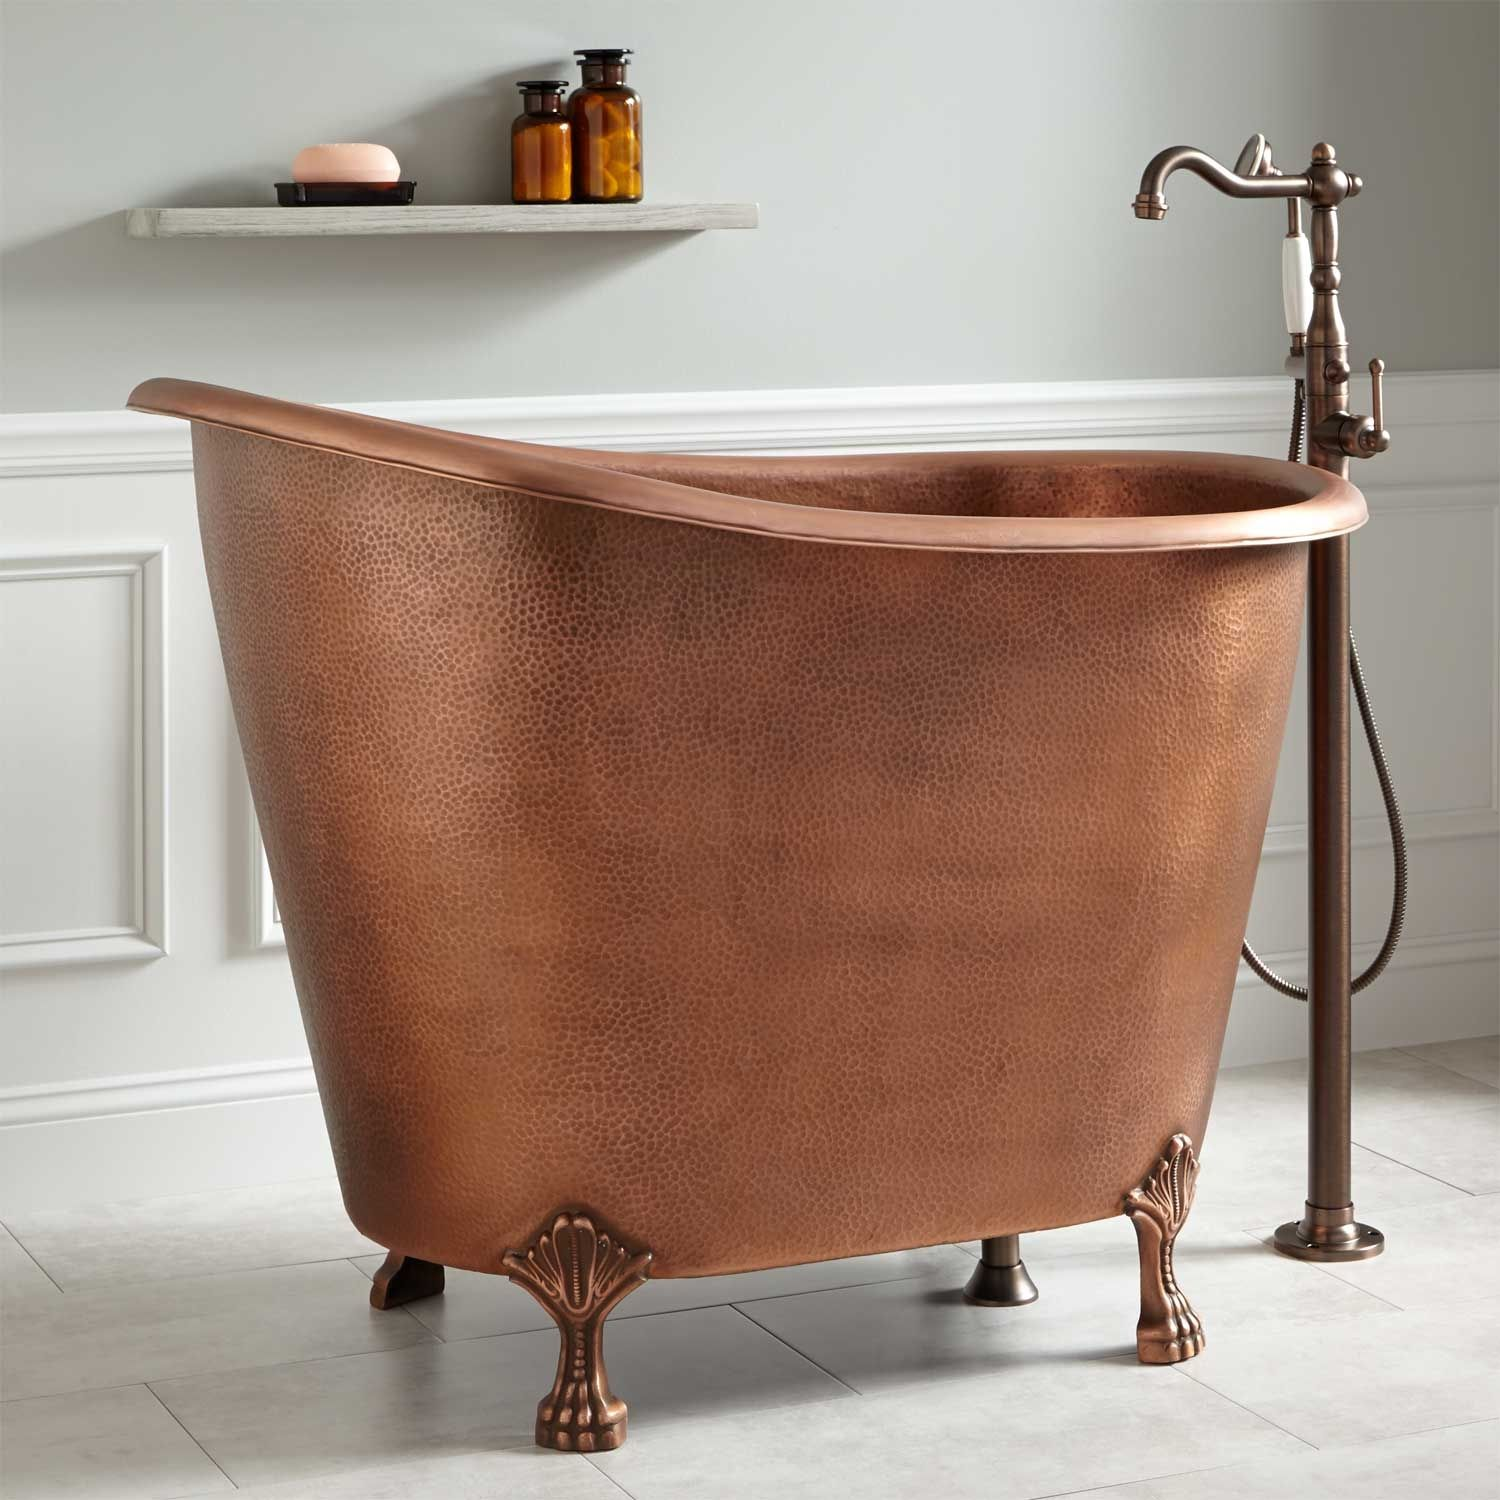 49 Abbey Hammered Copper Slipper Clawfoot Soaking Tub - Antique Copper